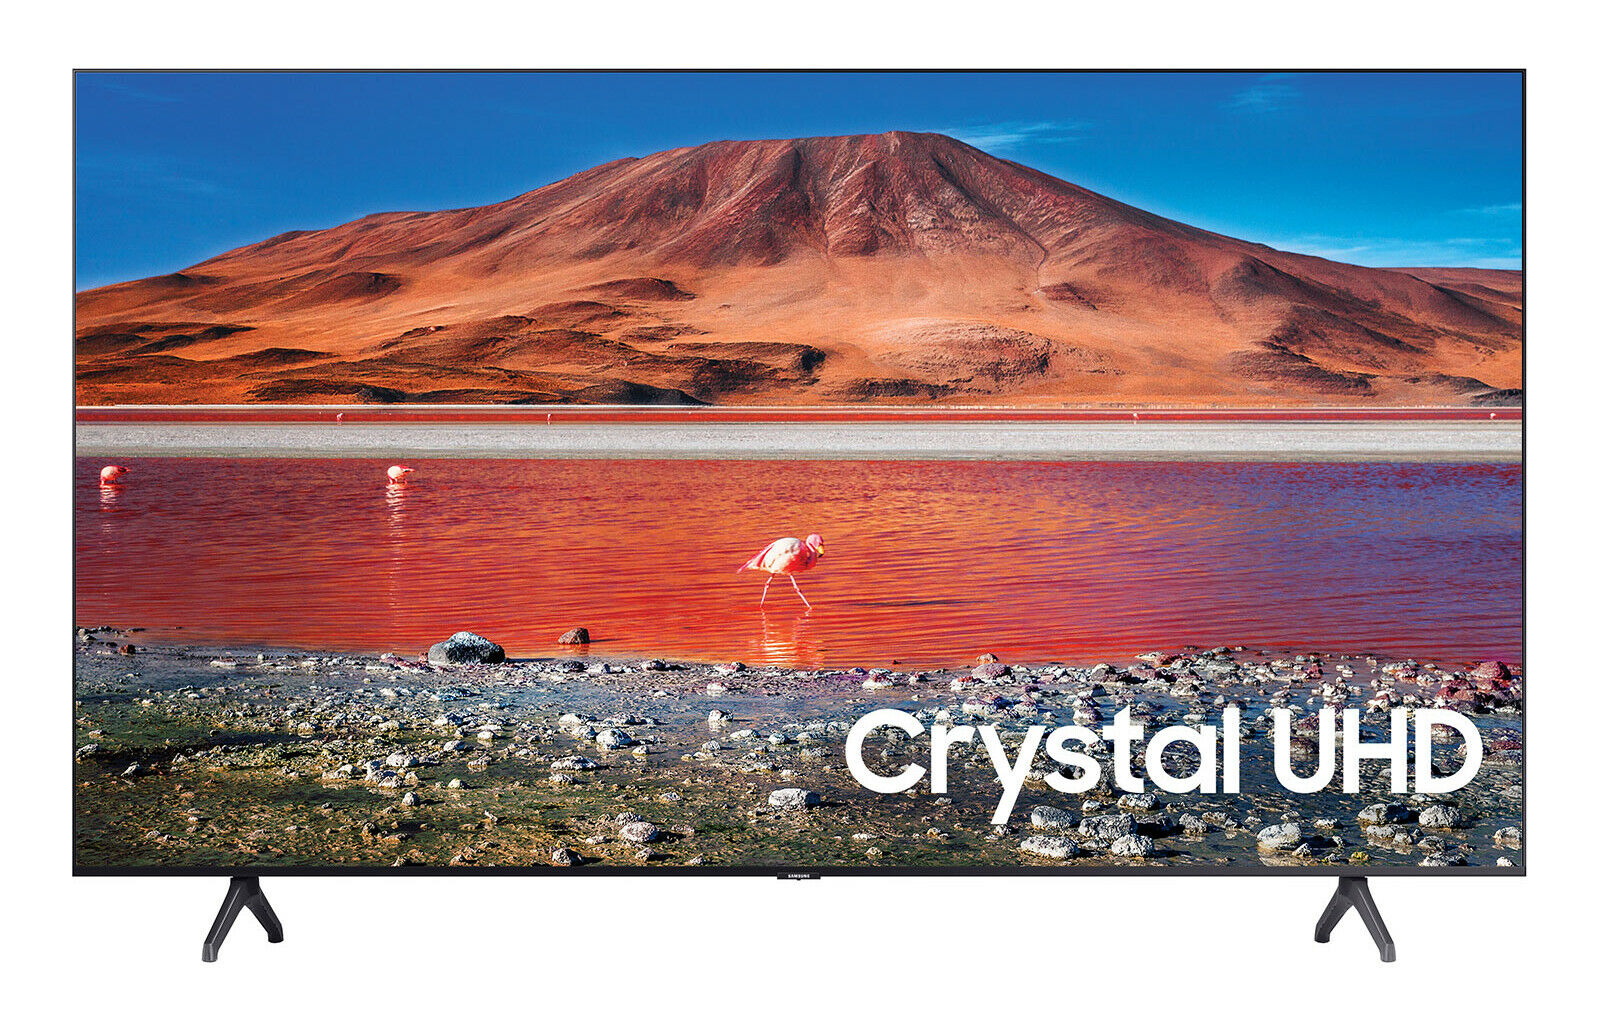 Samsung 70 inch TV 2020 LED 4K Crystal Ultra HD HDR Smart TV TU7000 Series. Buy it now for 750.00